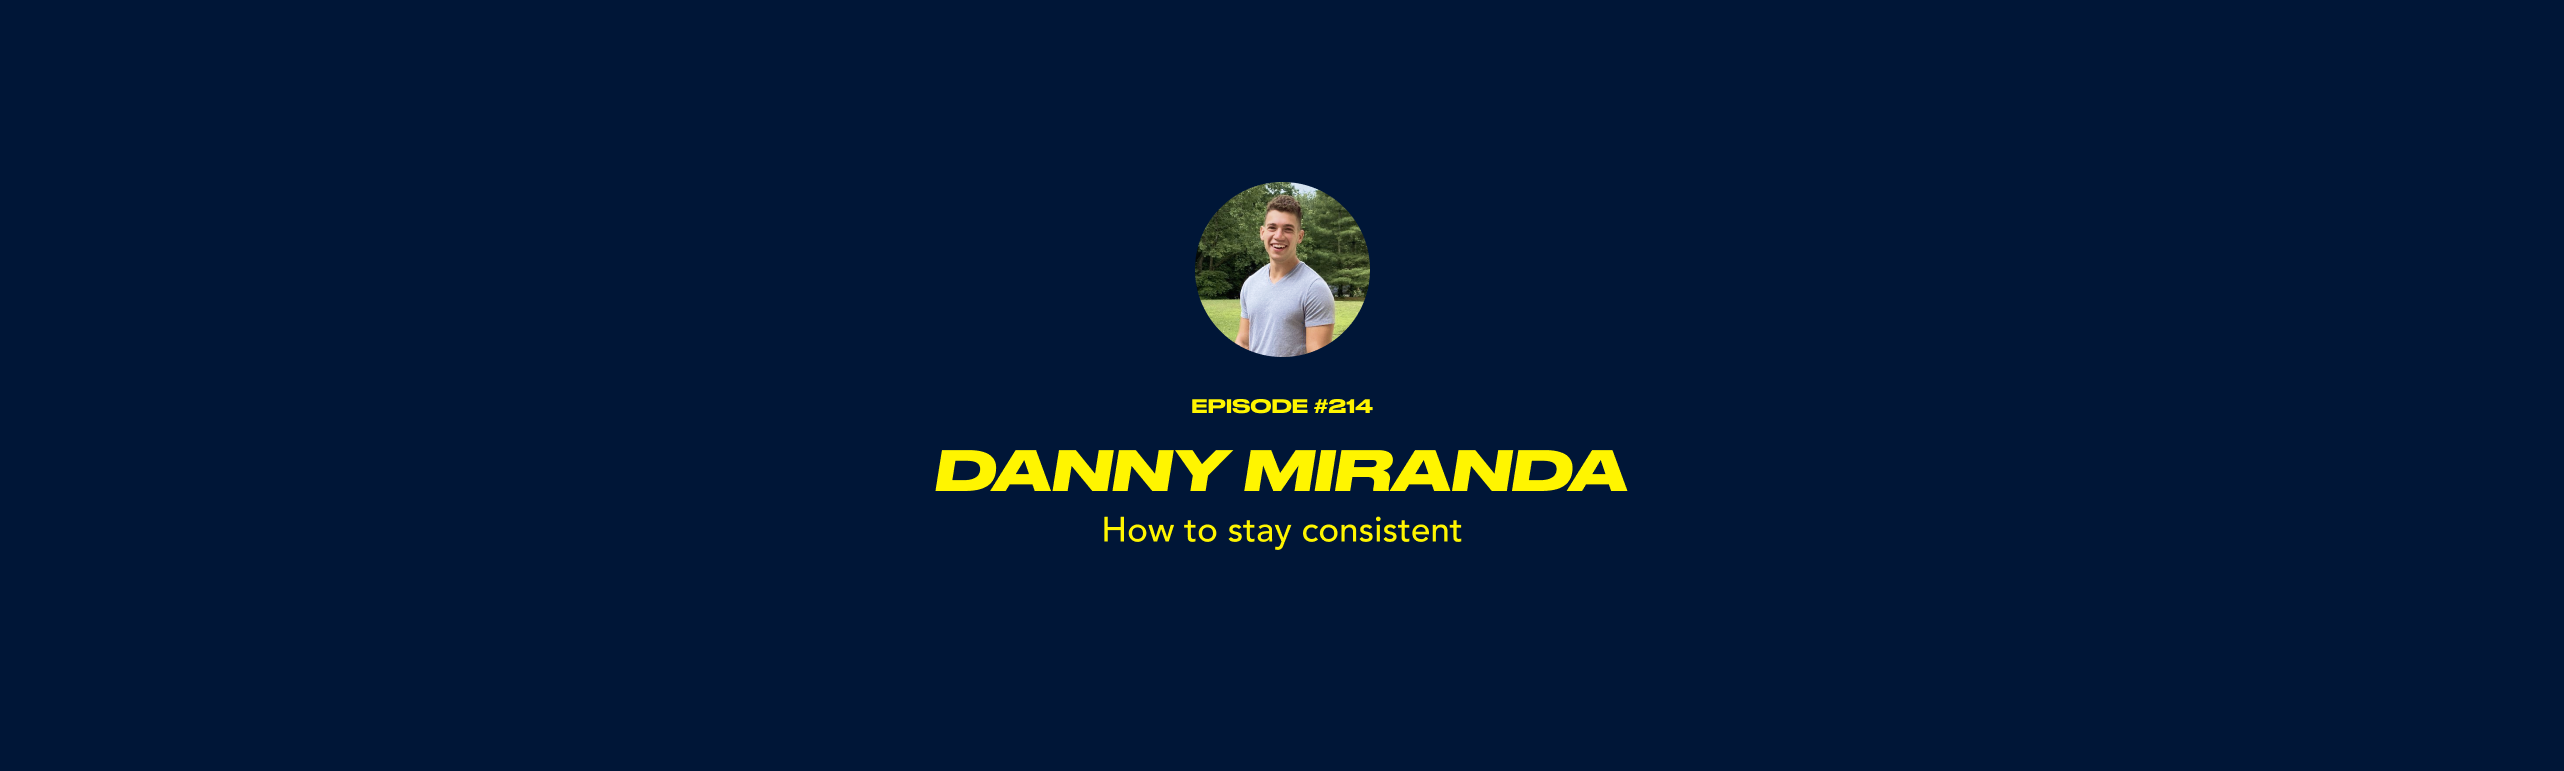 Danny Miranda - How to stay consistent